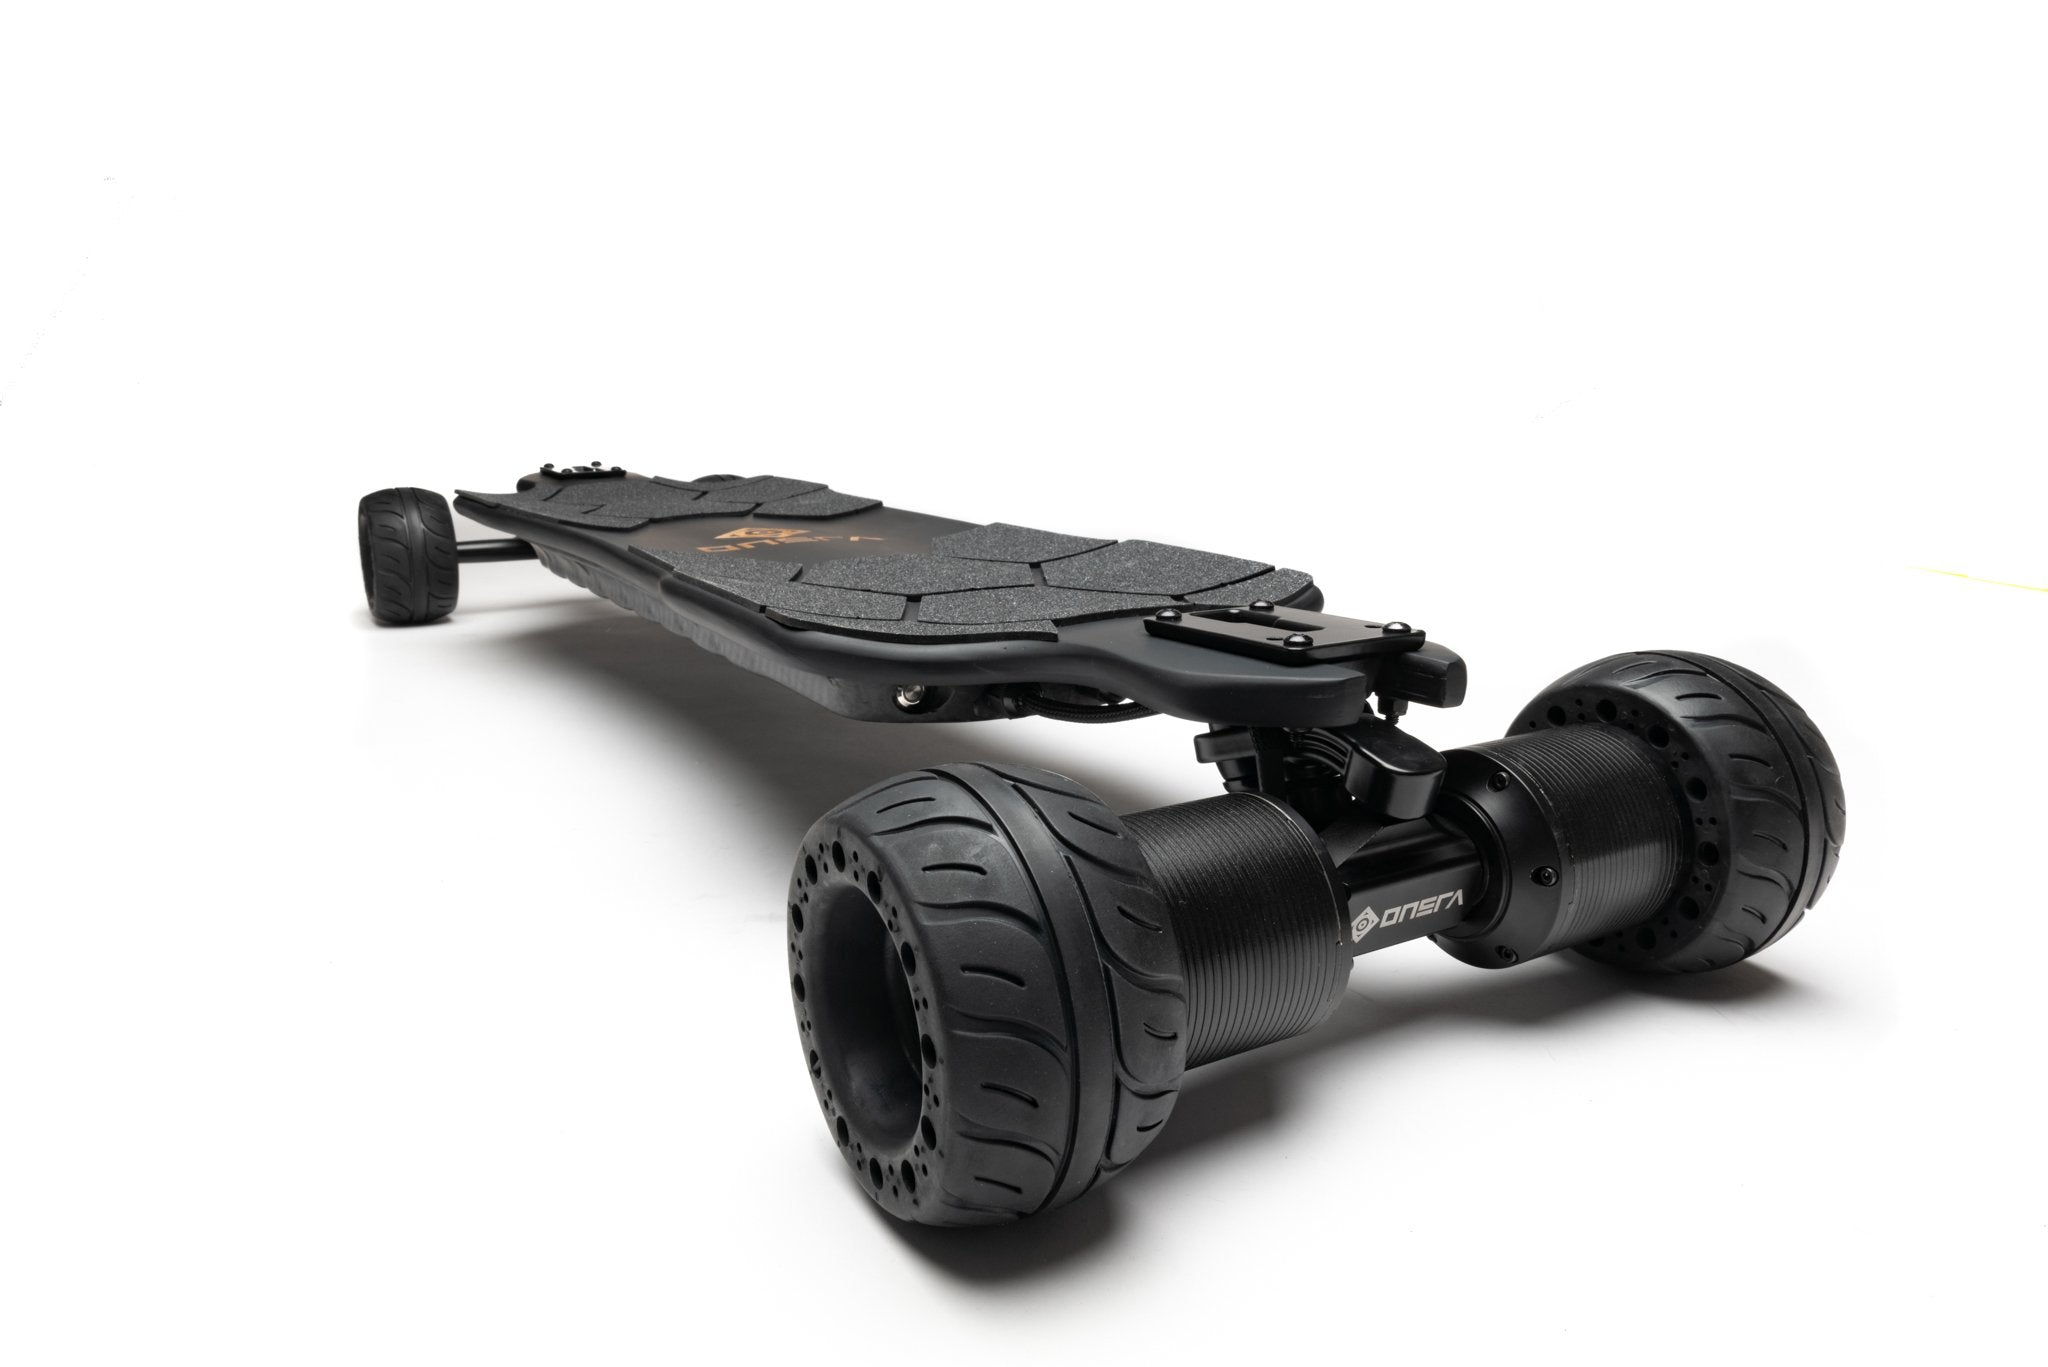 PREORDER Mayo - ONSRA BLACK Carve 2 - Direct Drive - Monopatín eléctrico 2021